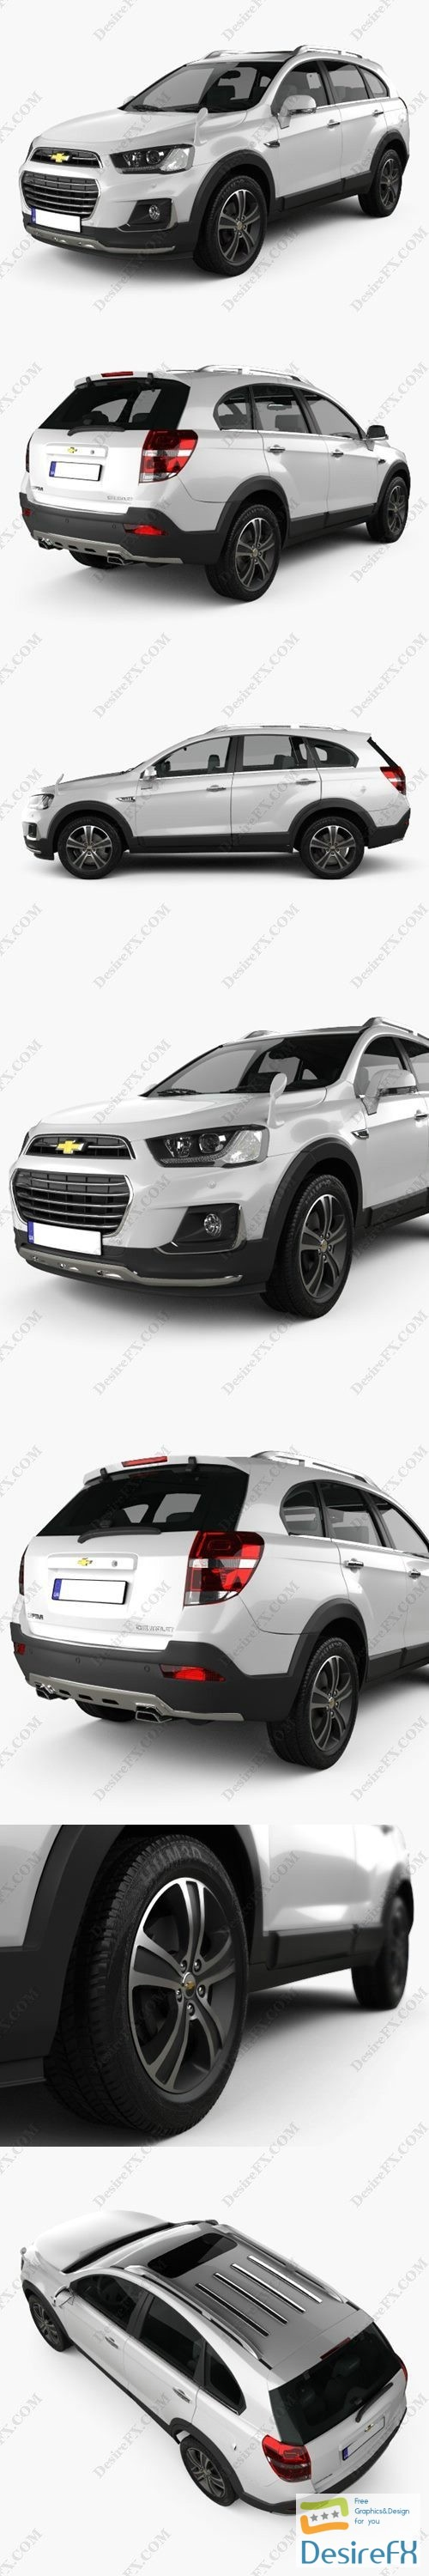 3d-models - Chevrolet Captiva (JP) 2015 3D Model